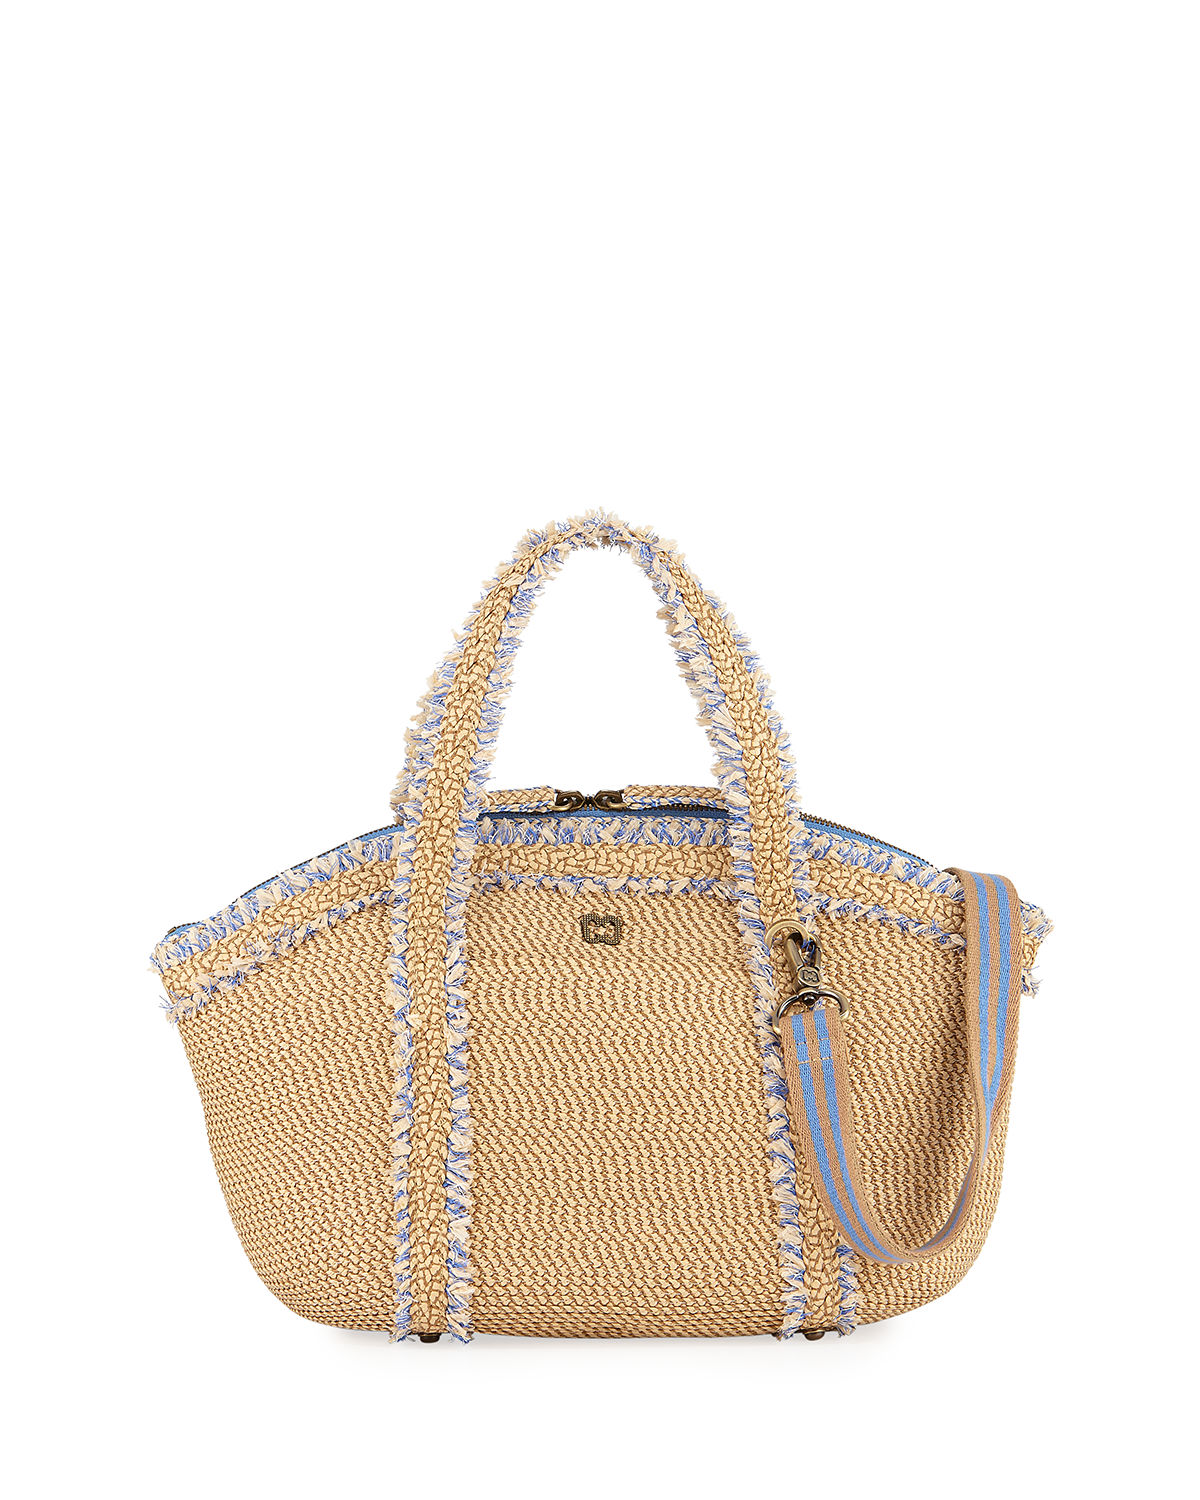 Squishee Covet Fringed Tote Bag